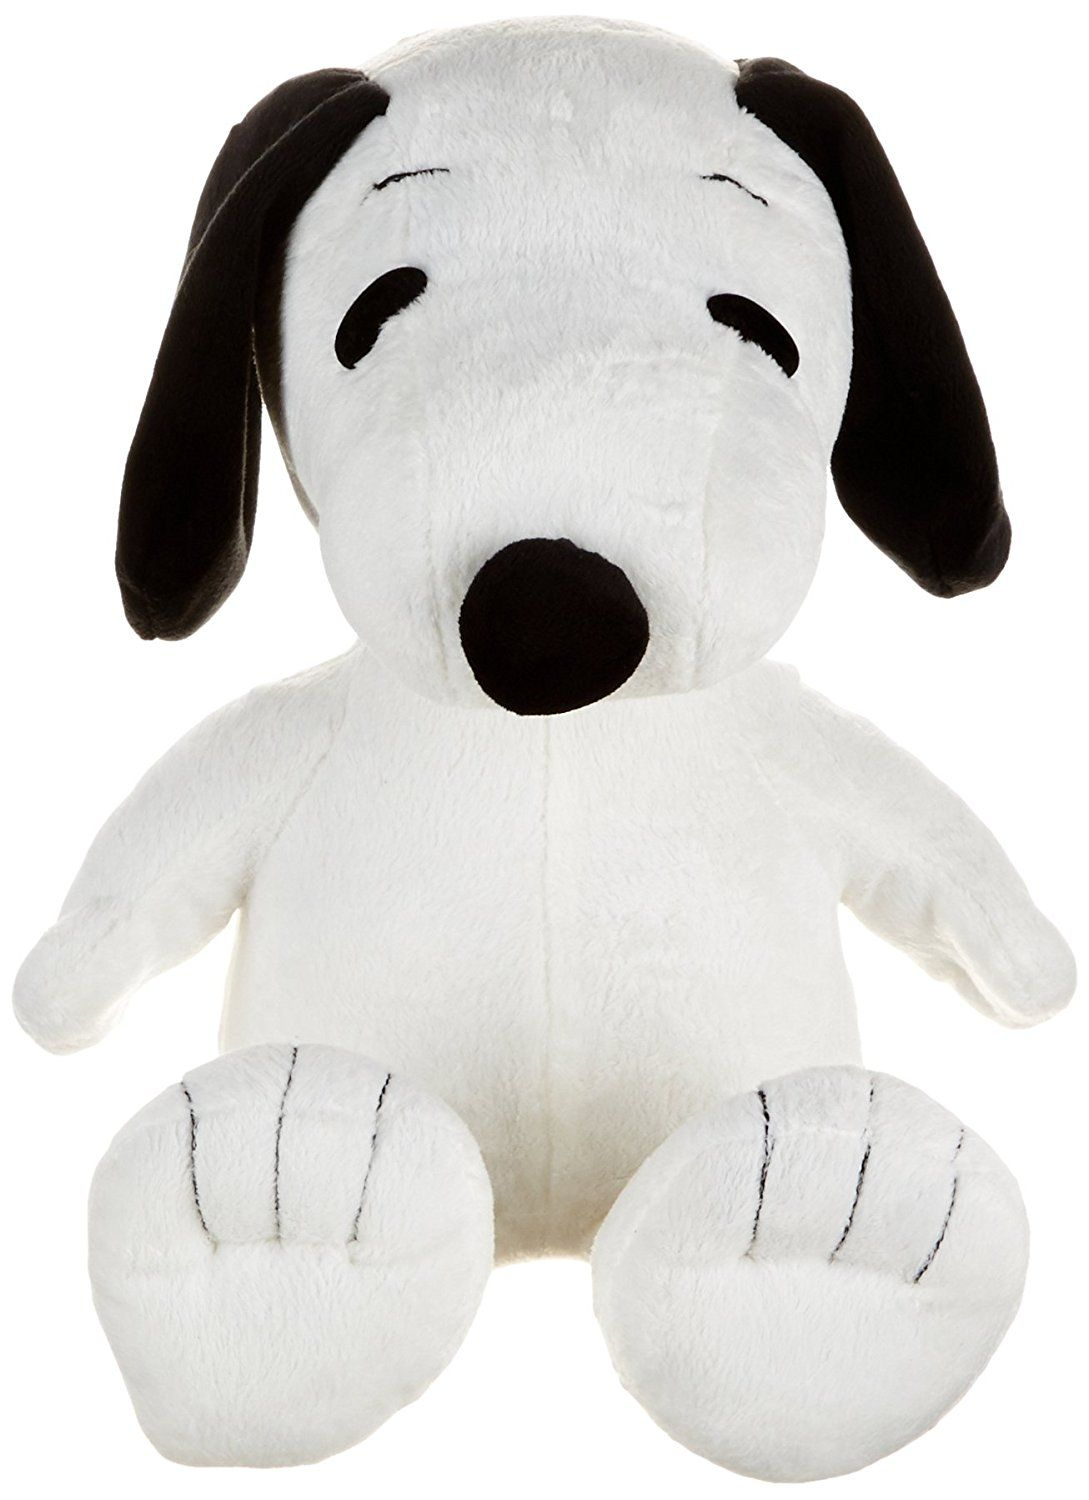 Big Stuffed Animals Snoopy Plush Snoopy Doll Toys The Peanuts